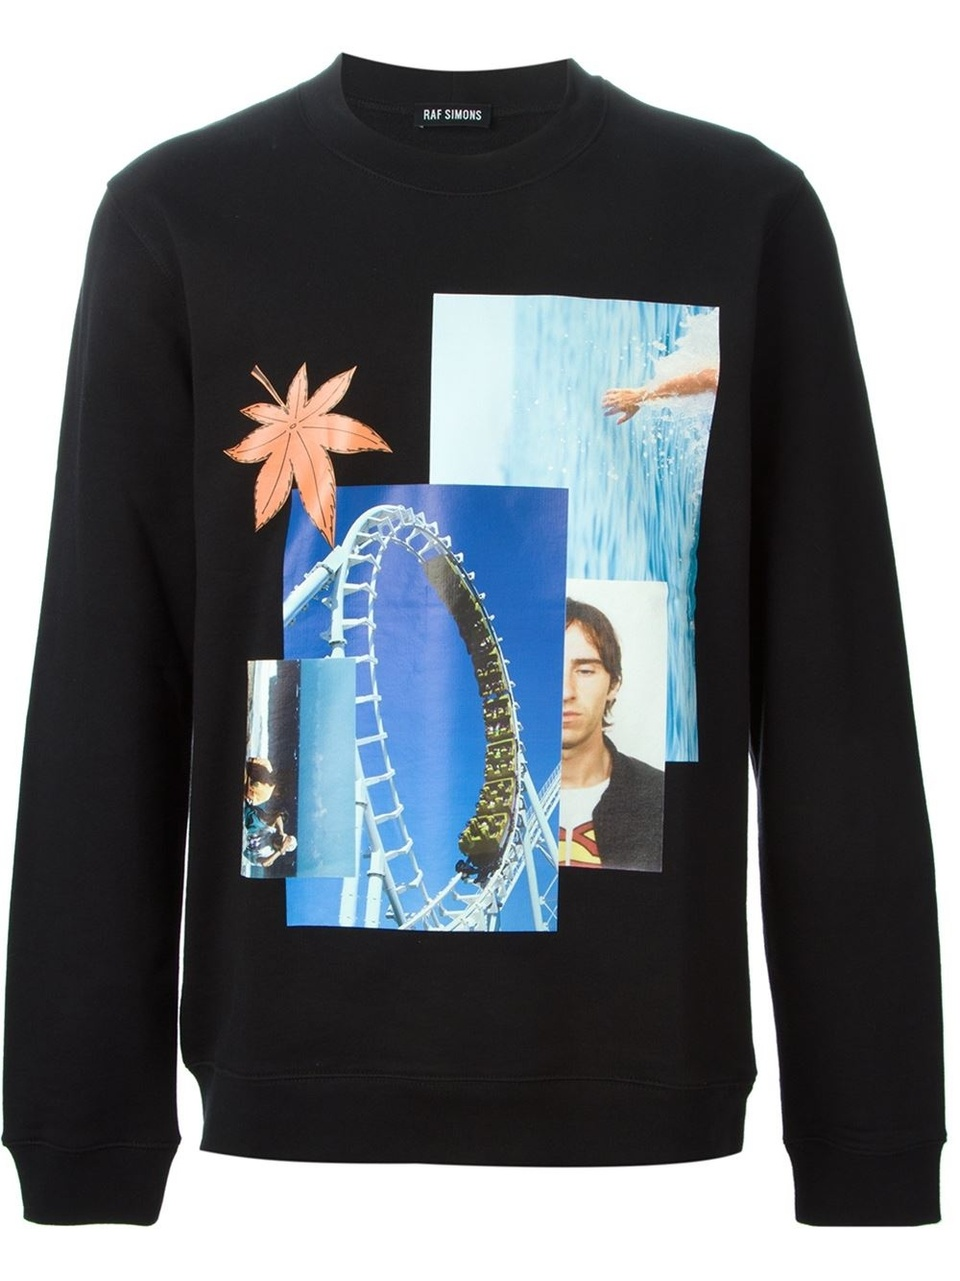 Rollercoaster print sweater by Raf Simons